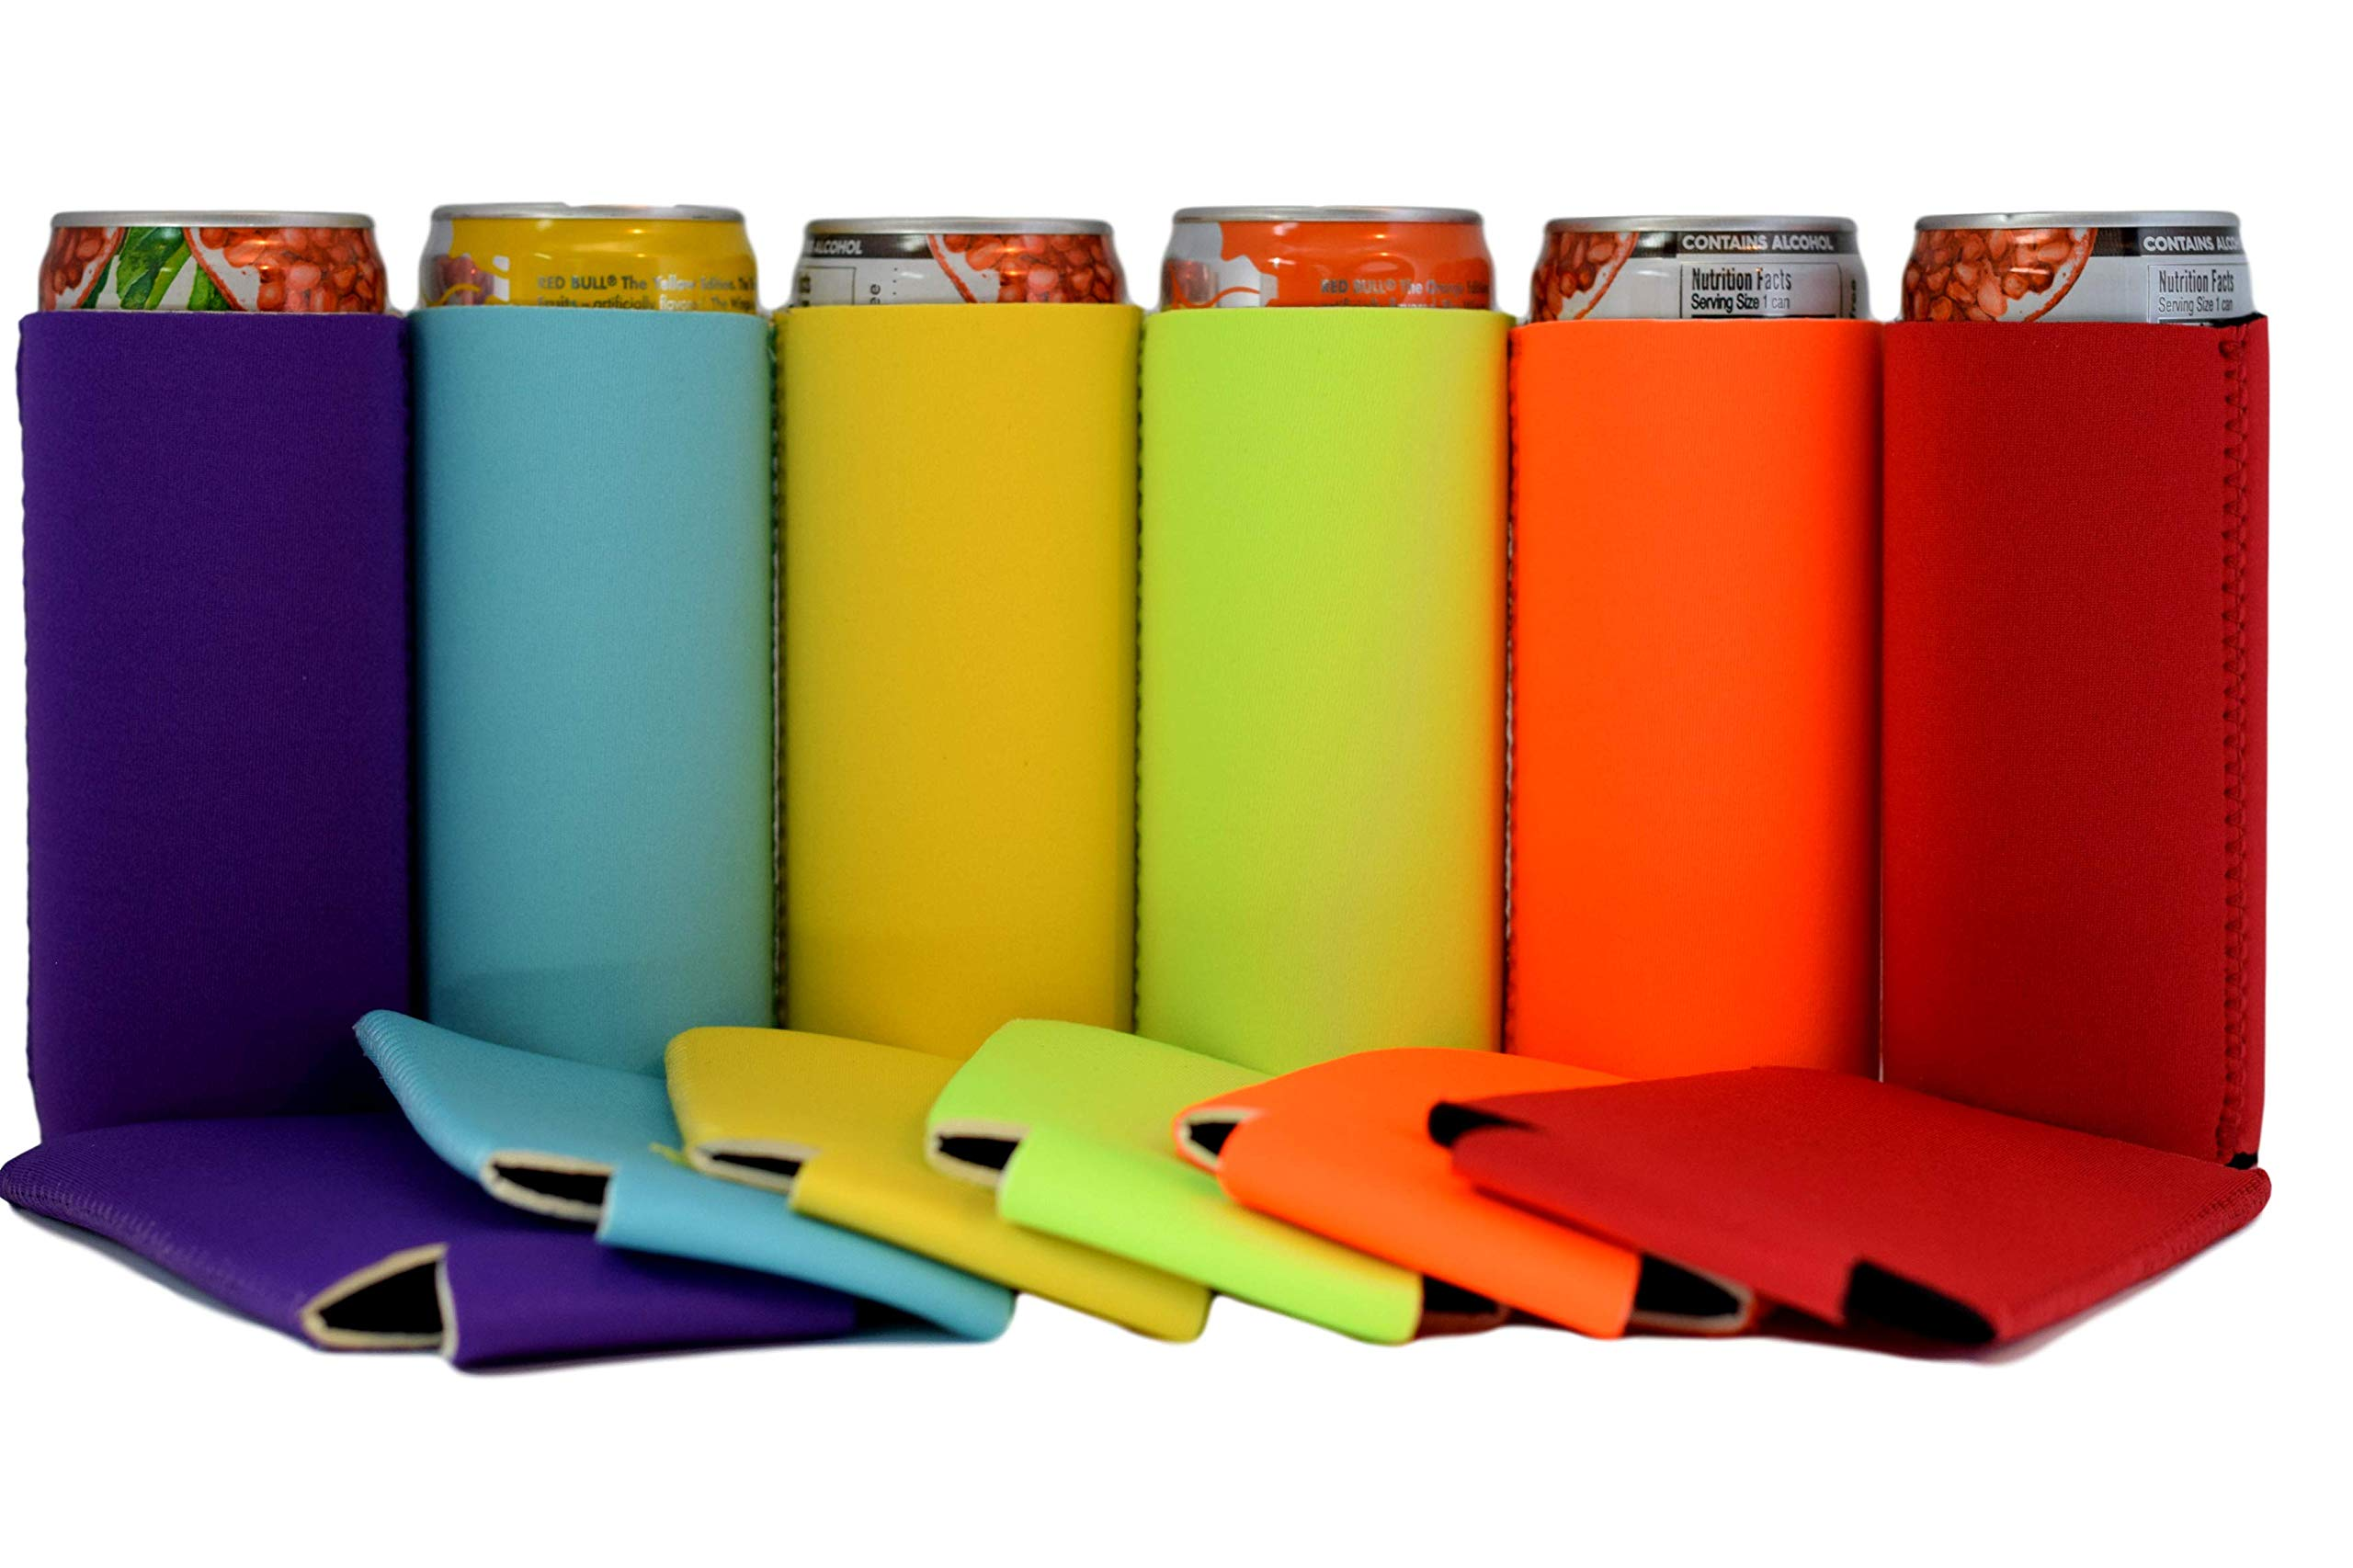 QualityPerfection 6 Assorted Ultra Slim Can Sleeves Premium Slim Beer Can,Energy Sleeves Great 4 Holidays,Events,Parties,Independence Day(6,Red,Purple,Neon Green,Neon Orange,Yellow,Turquoise)